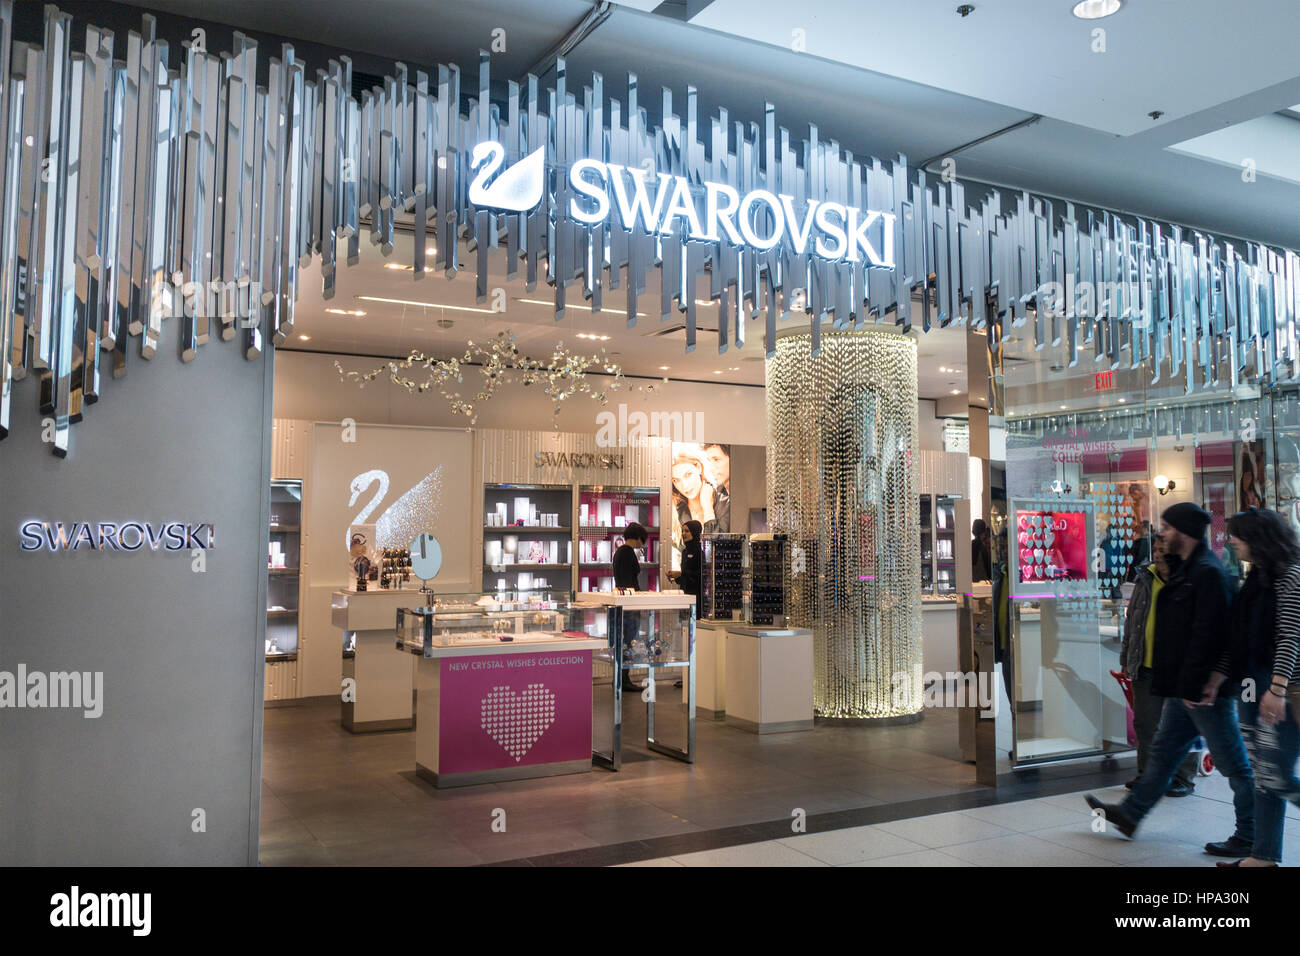 Swarovski Store High Resolution Stock Photography and Images - Alamy